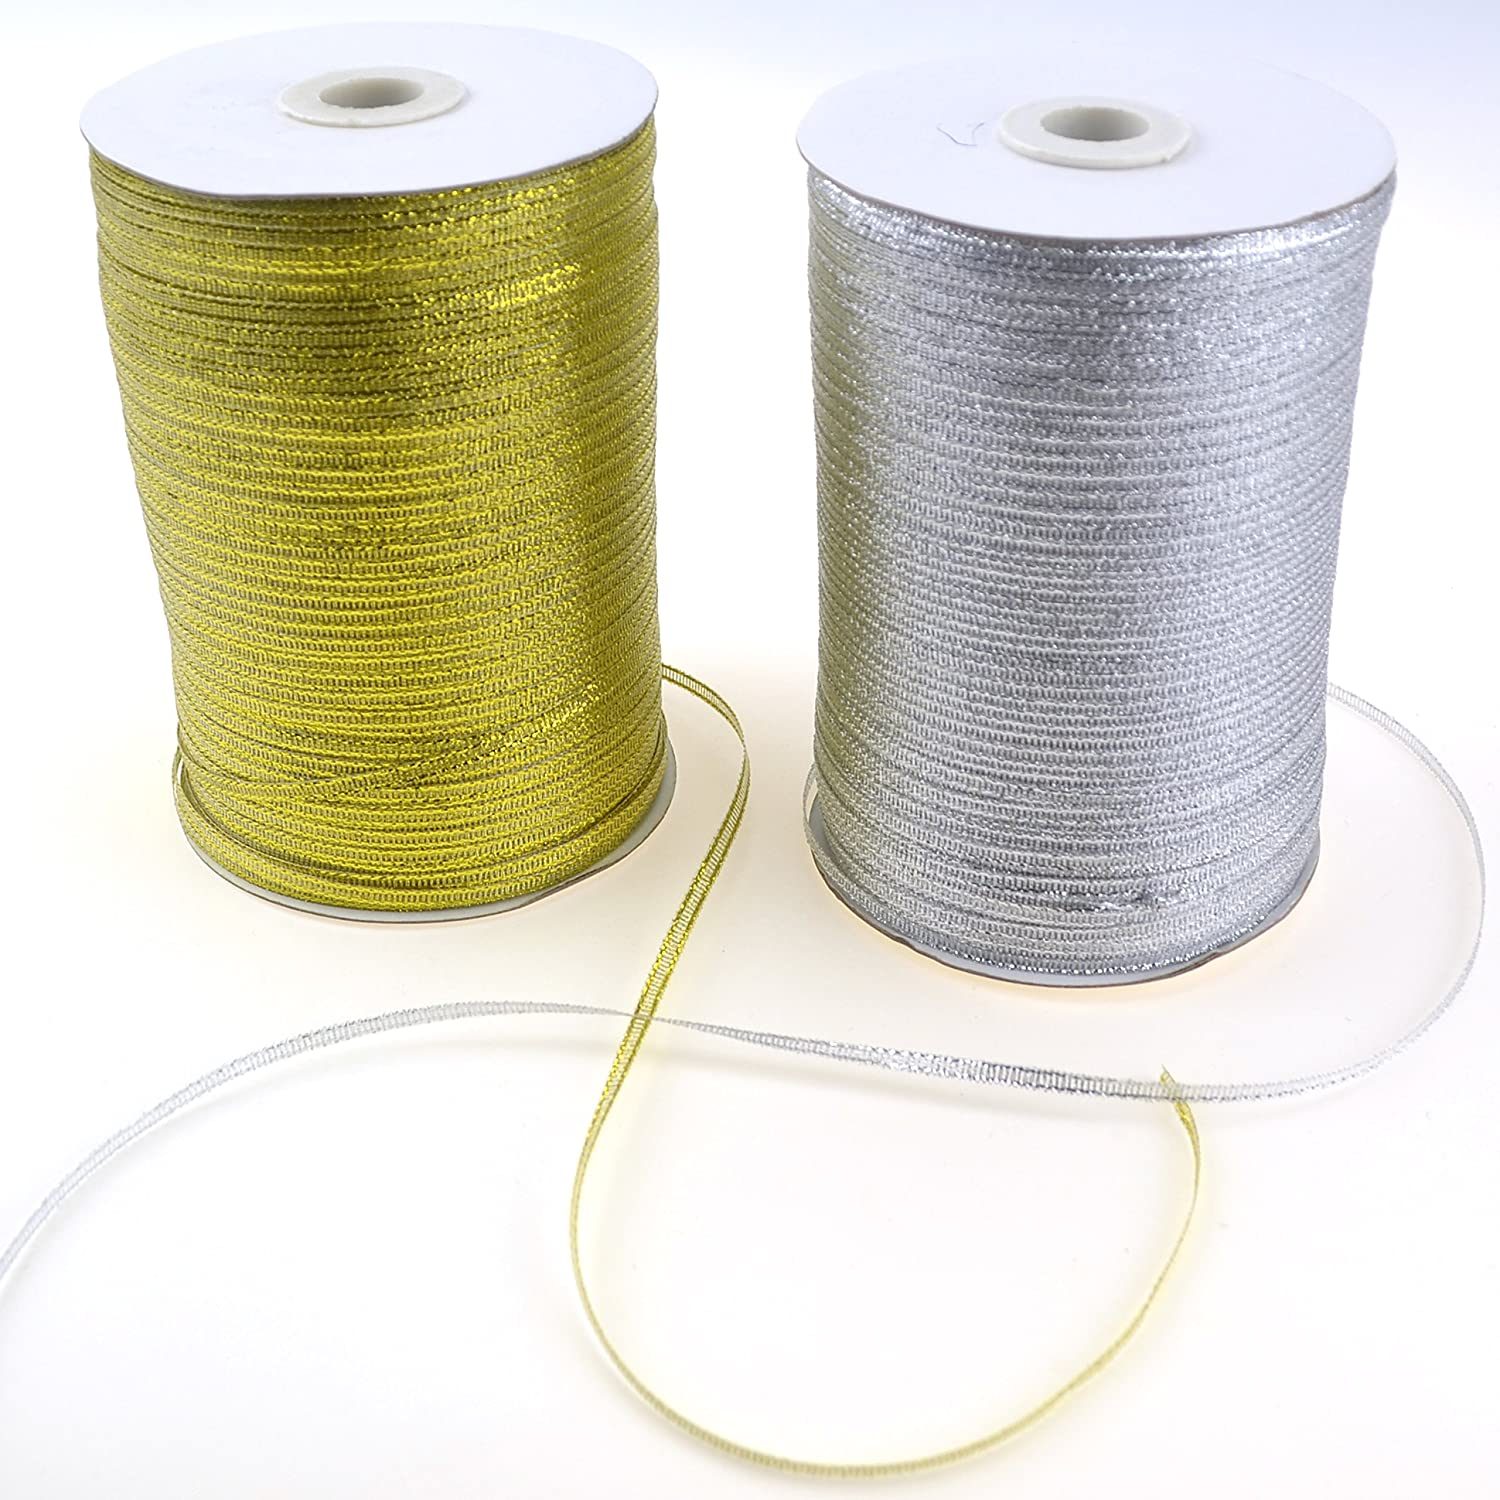 Double Face Woven Polyester Ribbon Hanging Tag/&Card for Art Projects 1//8-Inch x 870 Yard x 1 Spool, Yellow No Fading Scrapbook Fabric Ribbon 1//8-Inch Satin Ribbon by 870 Yard Giant Spool